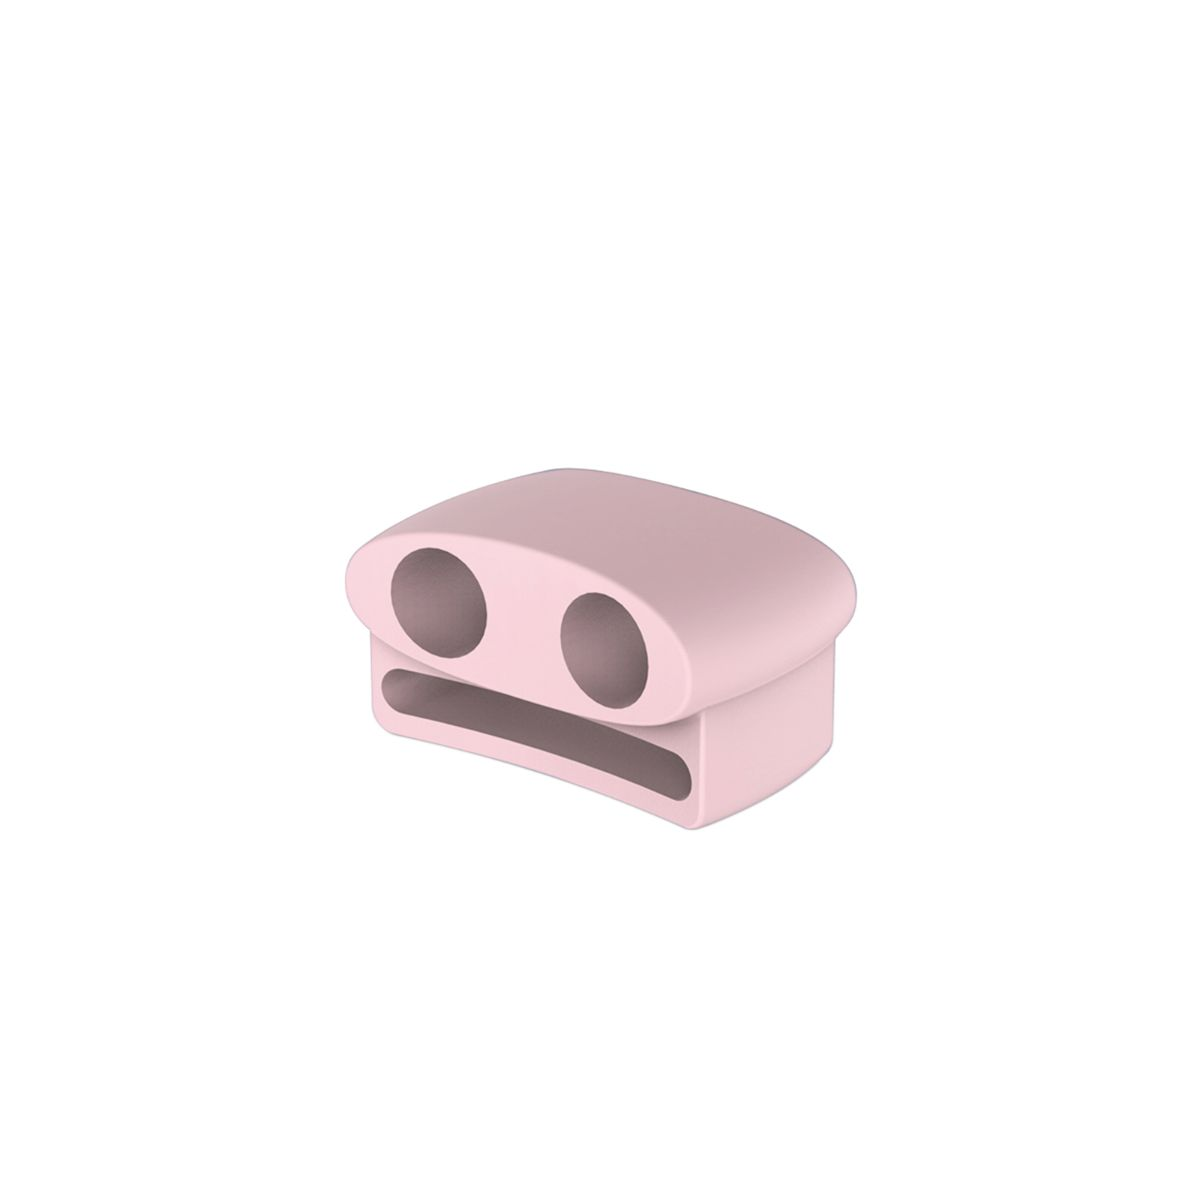 Promate AirPods Watch Band Holder, Anti -Lost Shockproof Silicone Watch Strap w/ Sweat-Resistant for Apple AirPods and AirPods 2, Apple Watch - Pink